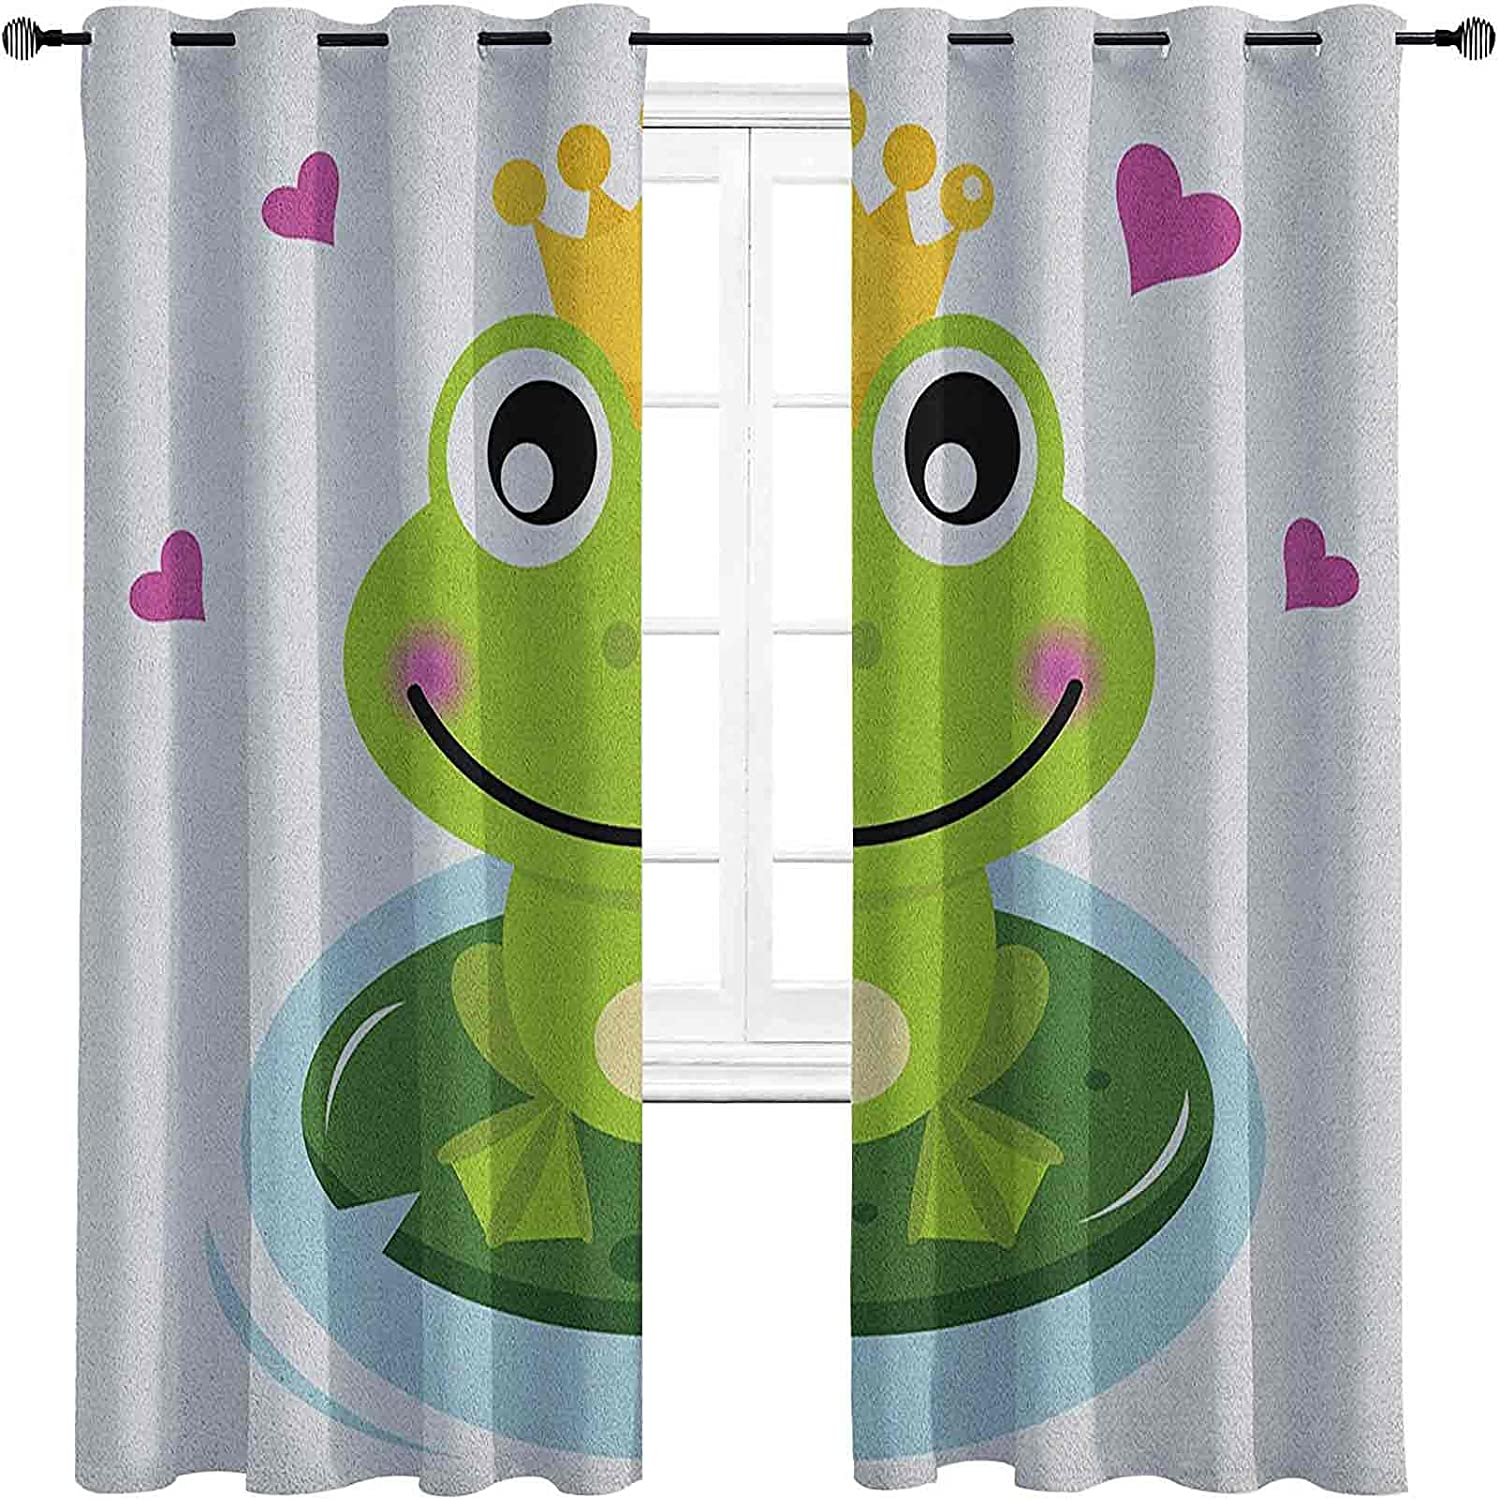 Animal Shading Insulated Curtain Cheap SALE Start Cartoon Frog Cheerful w Prince Special sale item